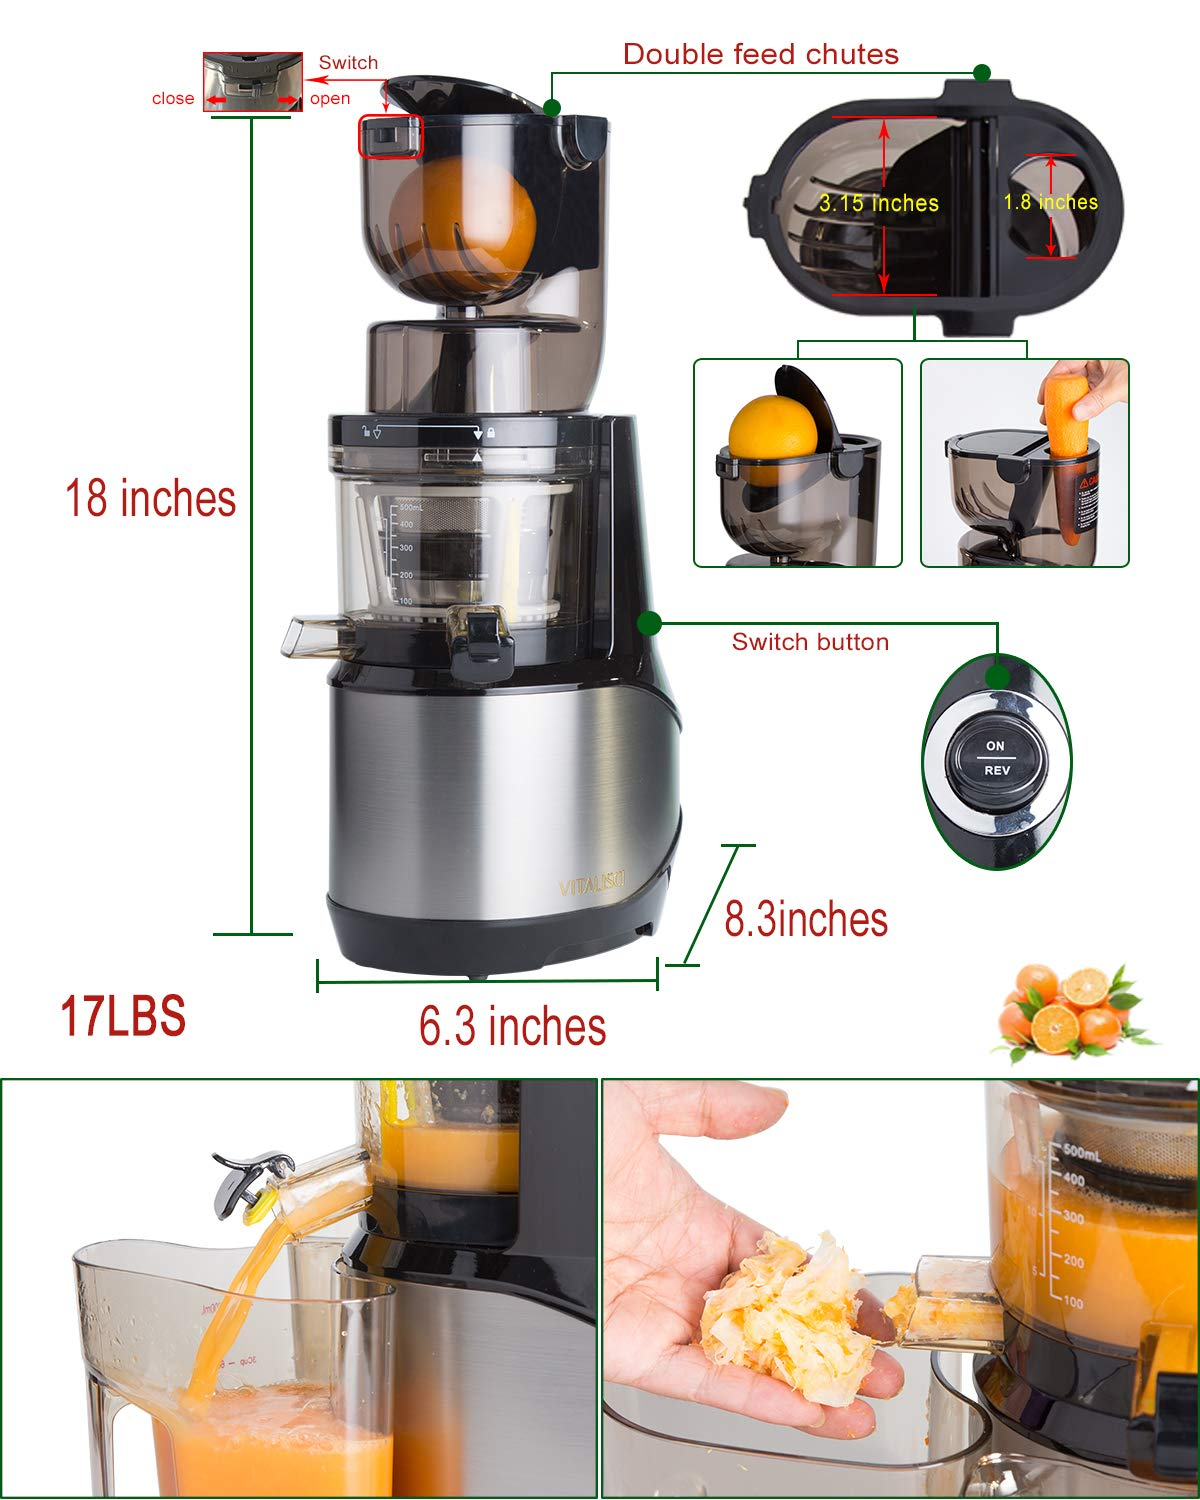 Masticating Juicer,Whole Slow Juicer Extractor by Vitalisci,Cold Press Juicer Machine,Anti-Oxidation for Fruit and Vegetable,Easy to Clean and BPA Free,(300W AC Motor/3.15'' Wide Chute/40 RPMs)-Silver by Vitalisci (Image #2)